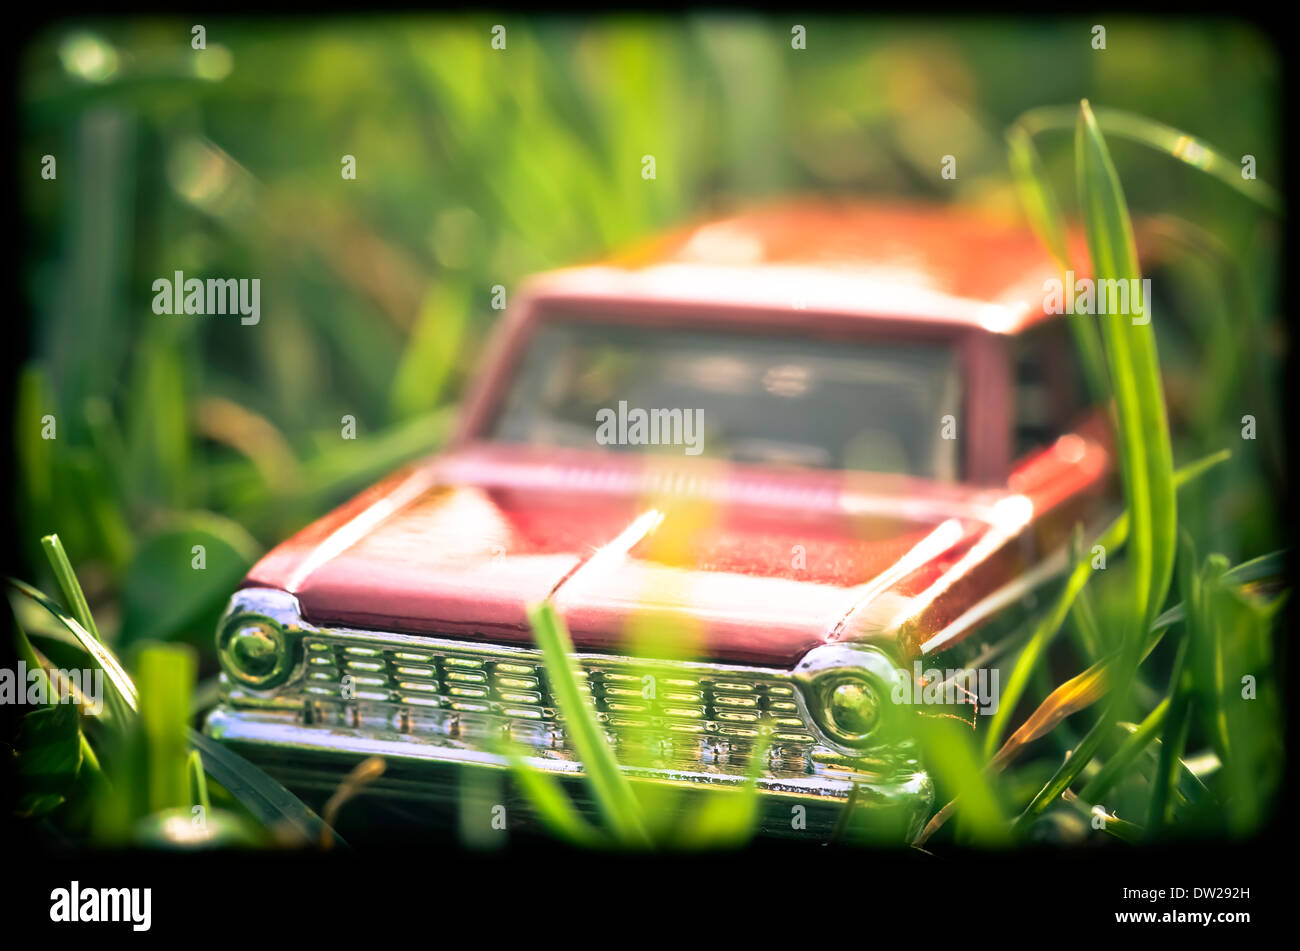 Red Toy Car On Grass Stock Photo 67048537 Alamy